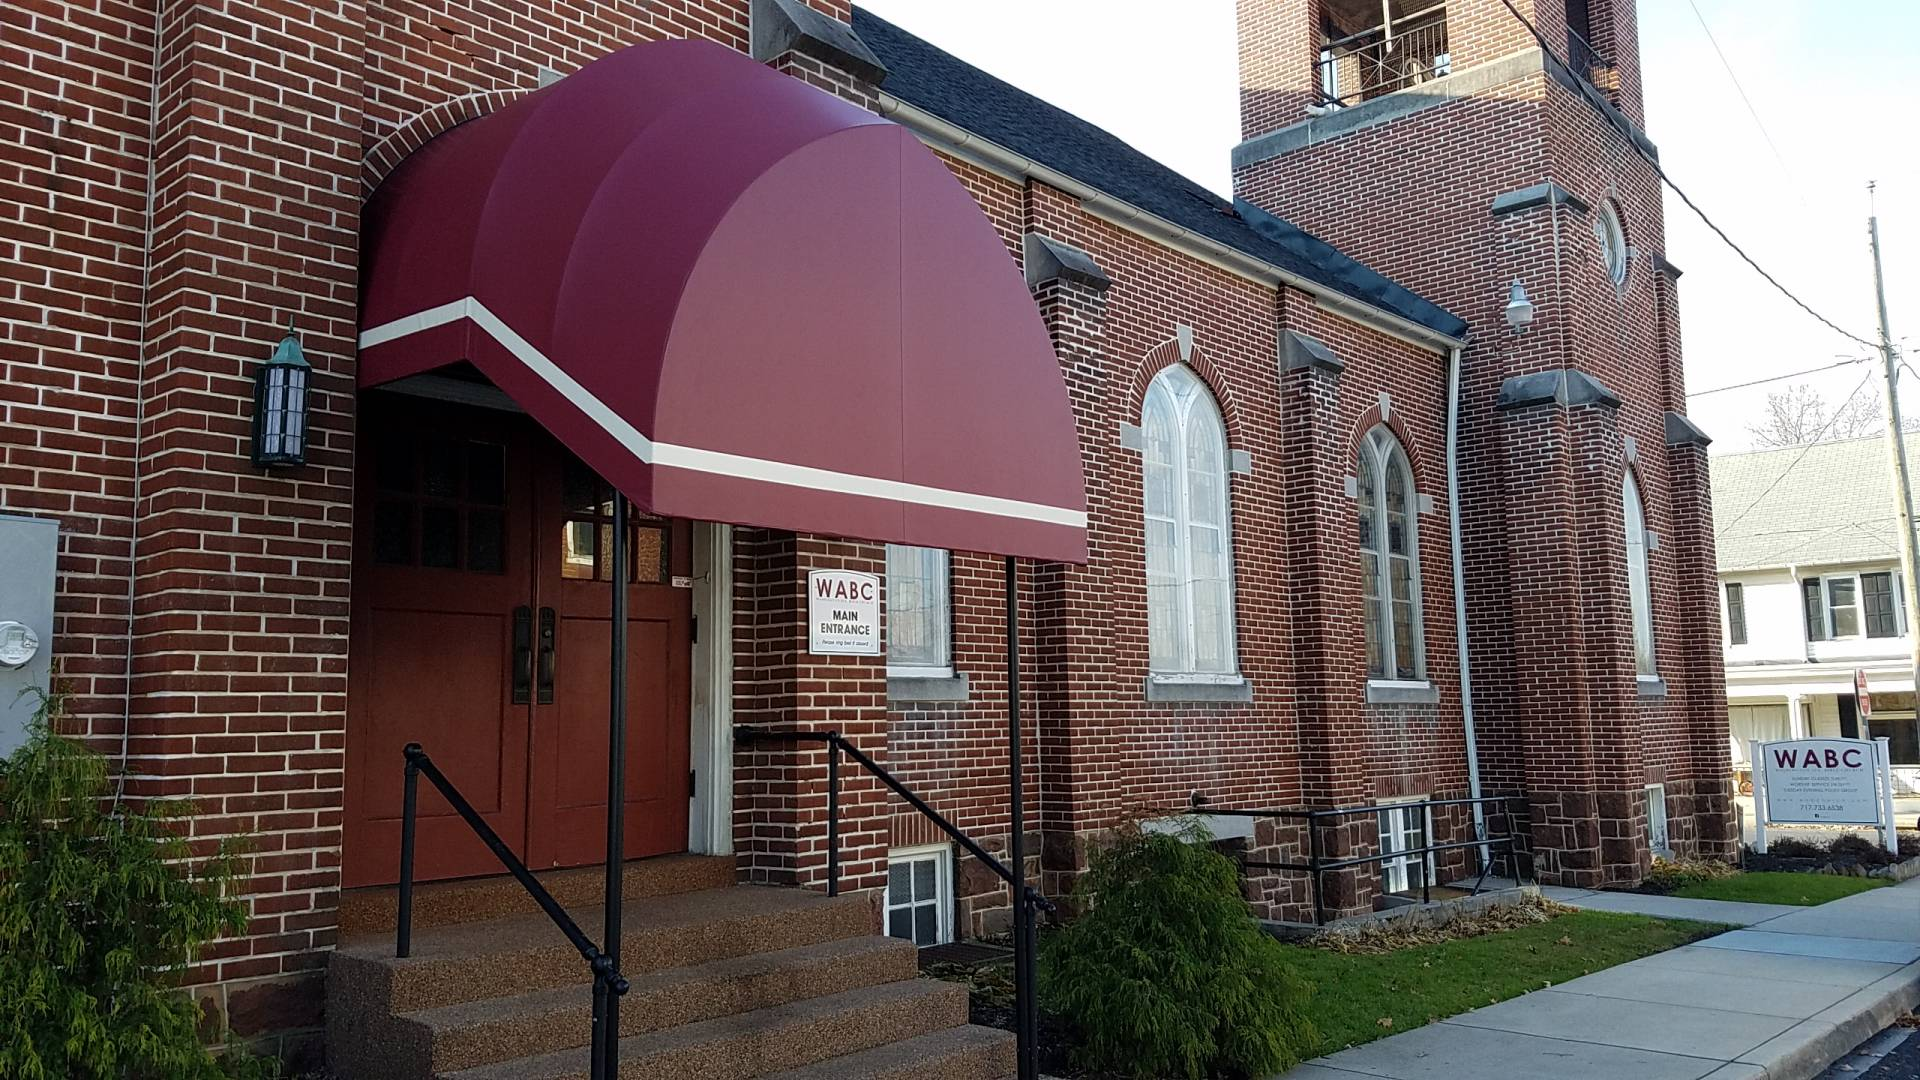 Entrance Canopy Installed Over Stairs At A Church